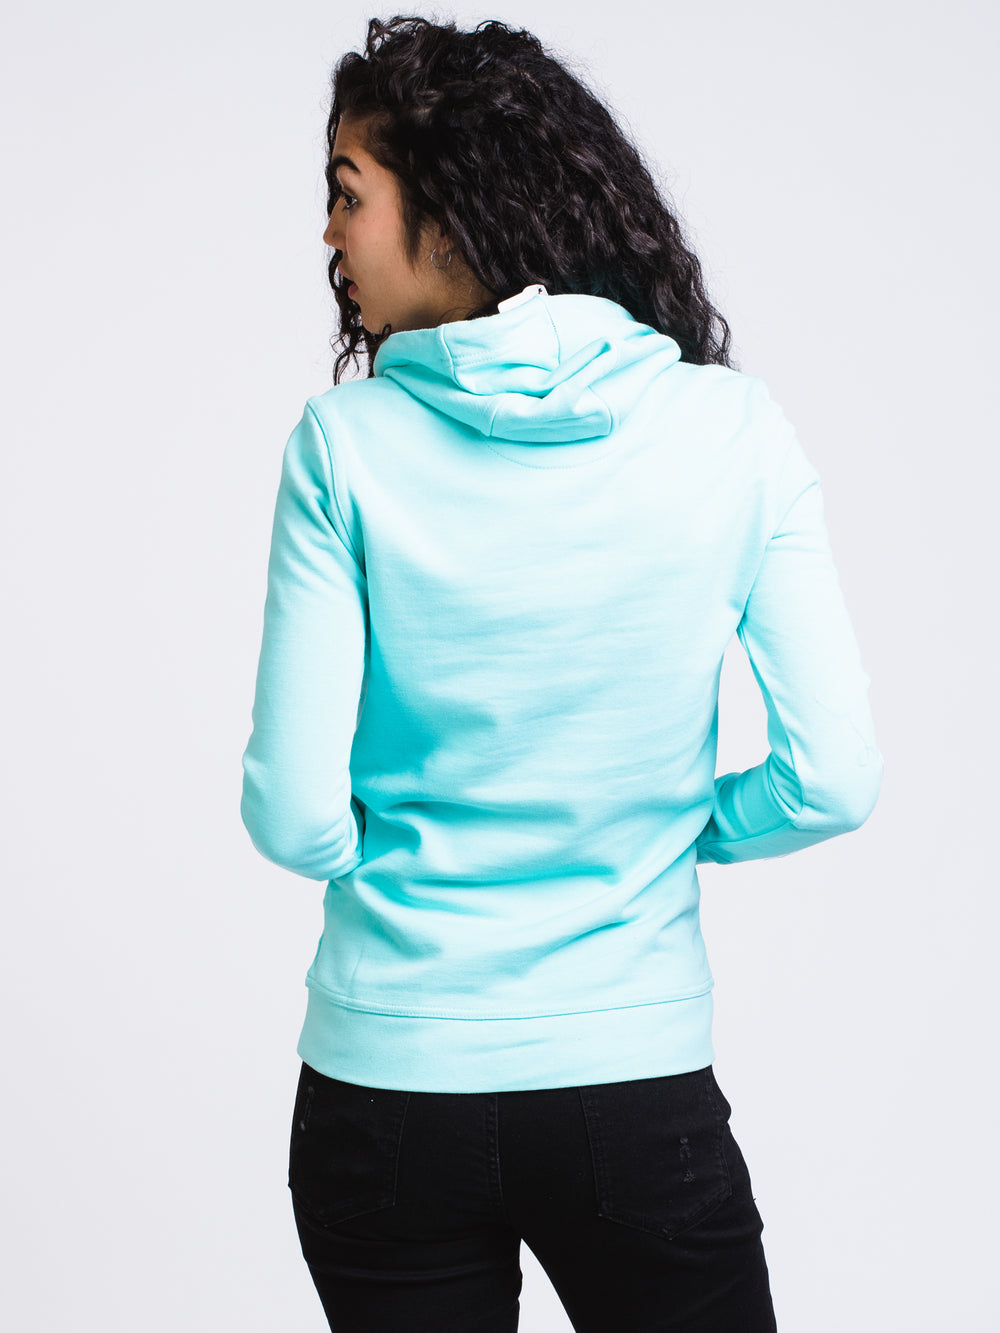 WOMENS AUTHENTIC ZIMY HOODIE - TRQ - CLEARANCE